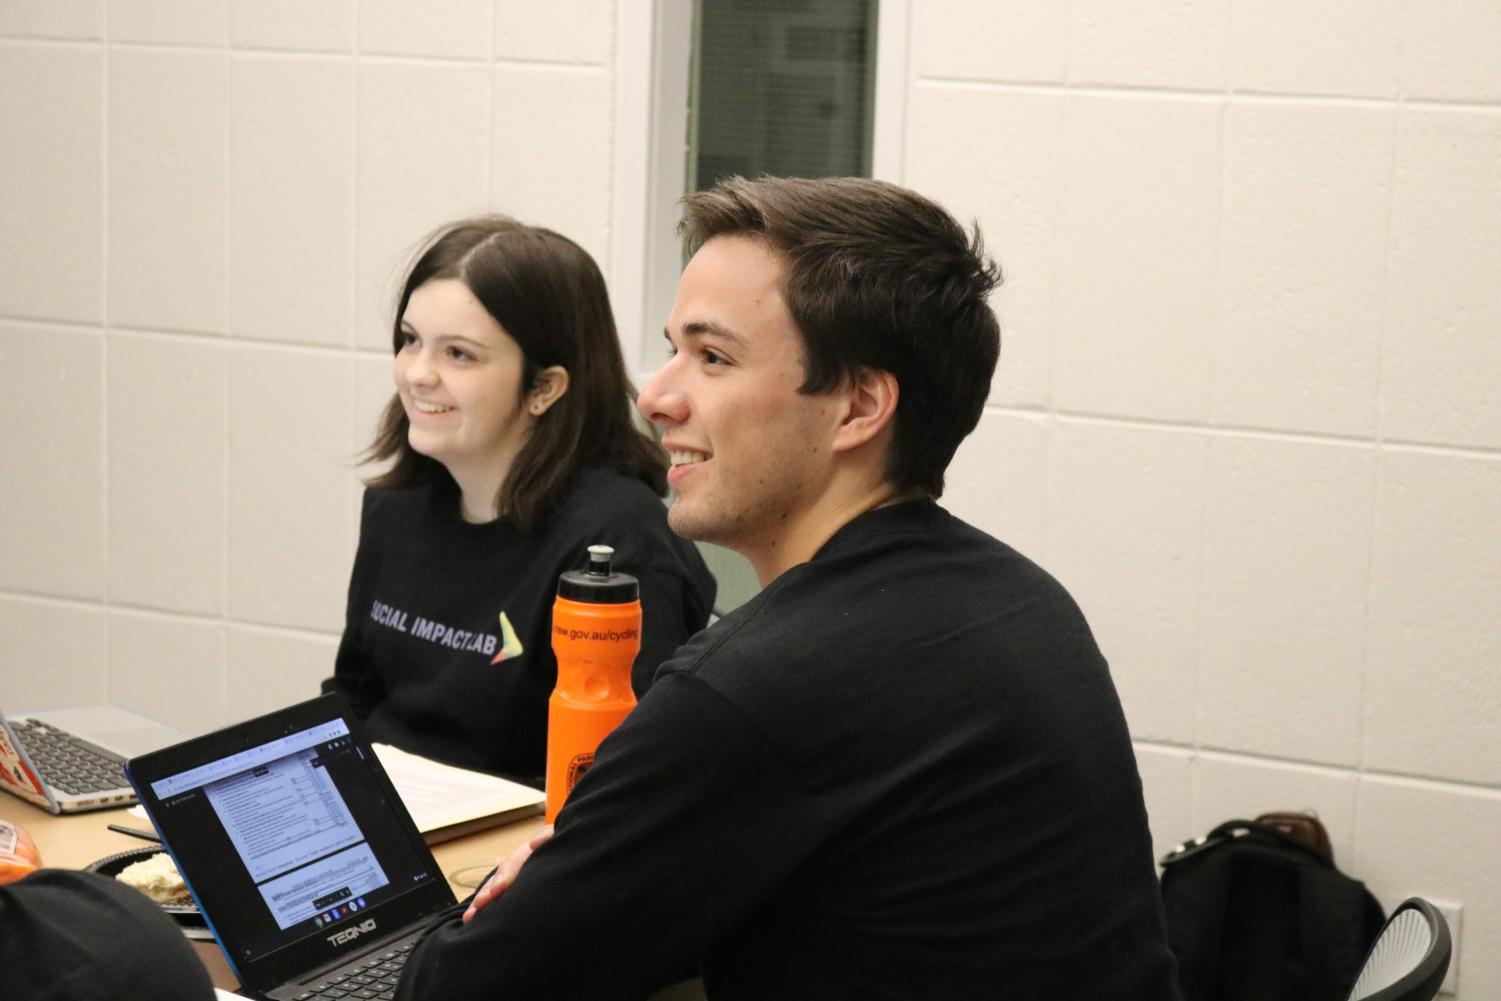 First-year Emerson Toomey (left) and fifth-year Ryan Maia (right) discuss their proposal for the Social Impact-athon.